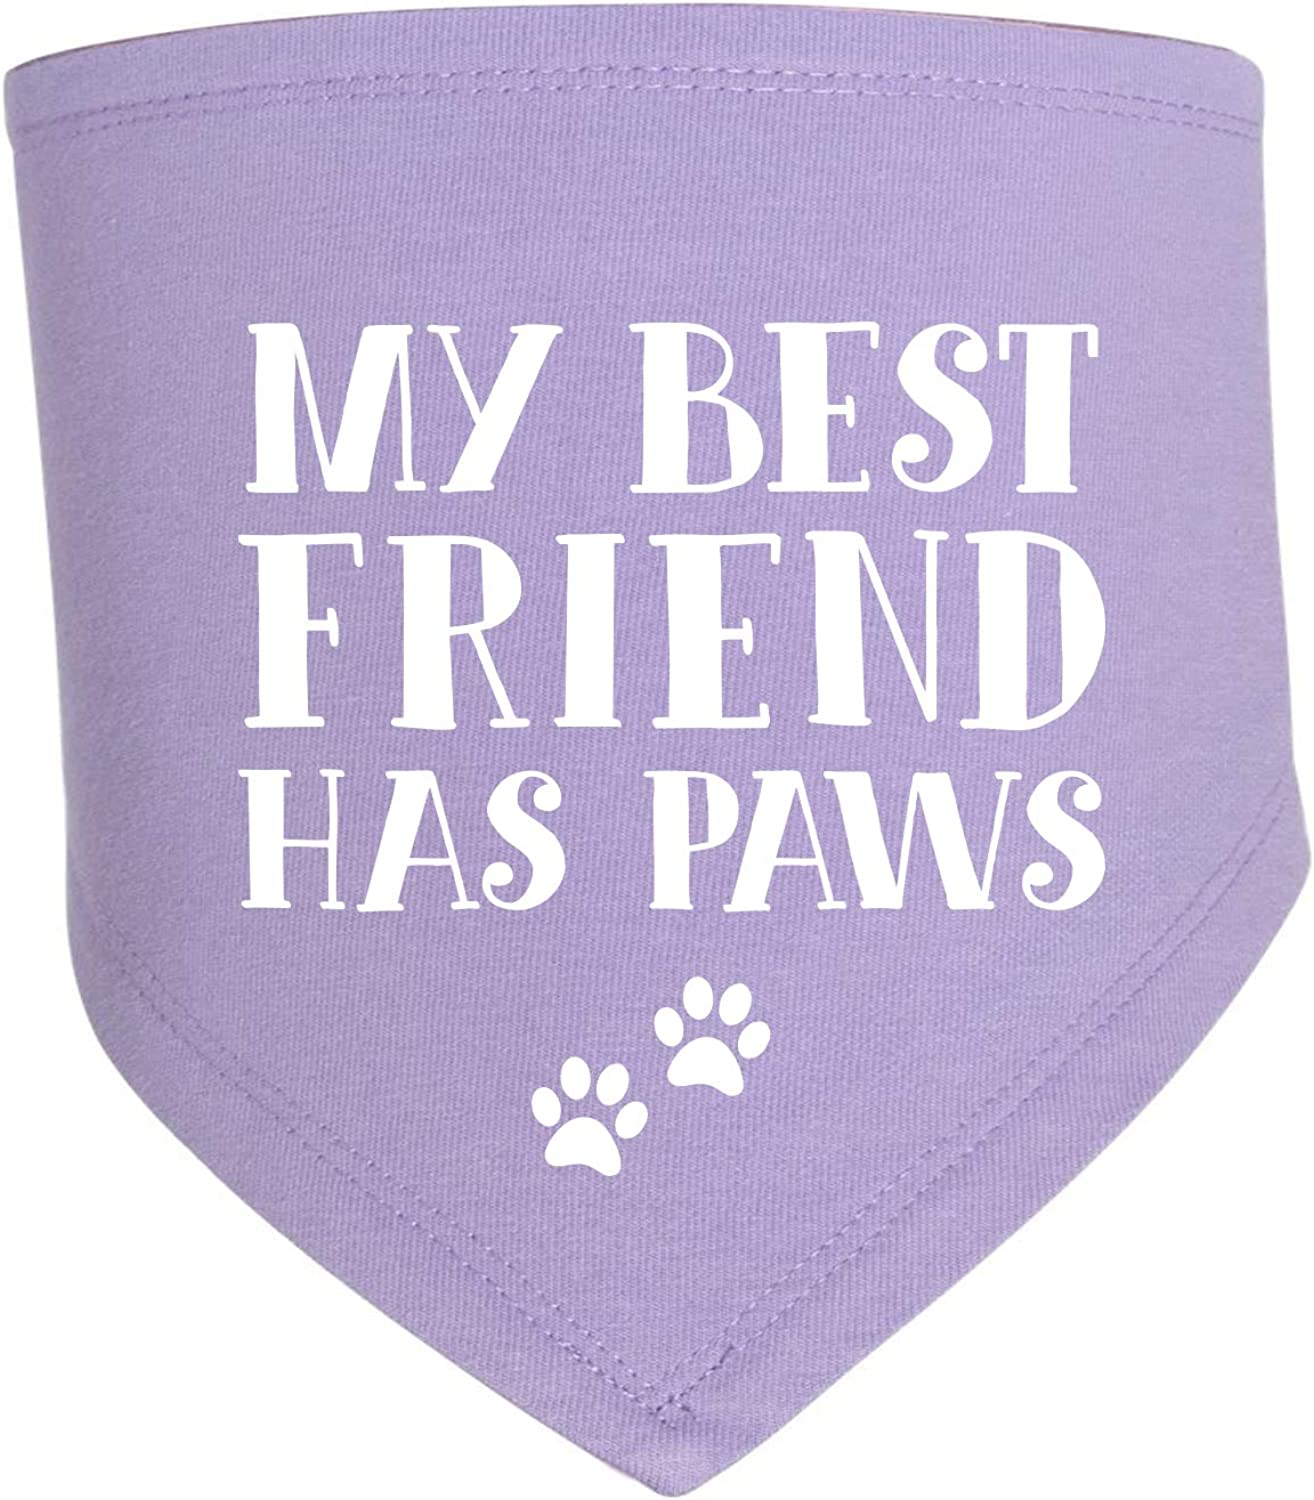 My Best Friend Has Paws Triangle Premium Baby Bib (Assorted Colors) Dog Sibling Sister Brother